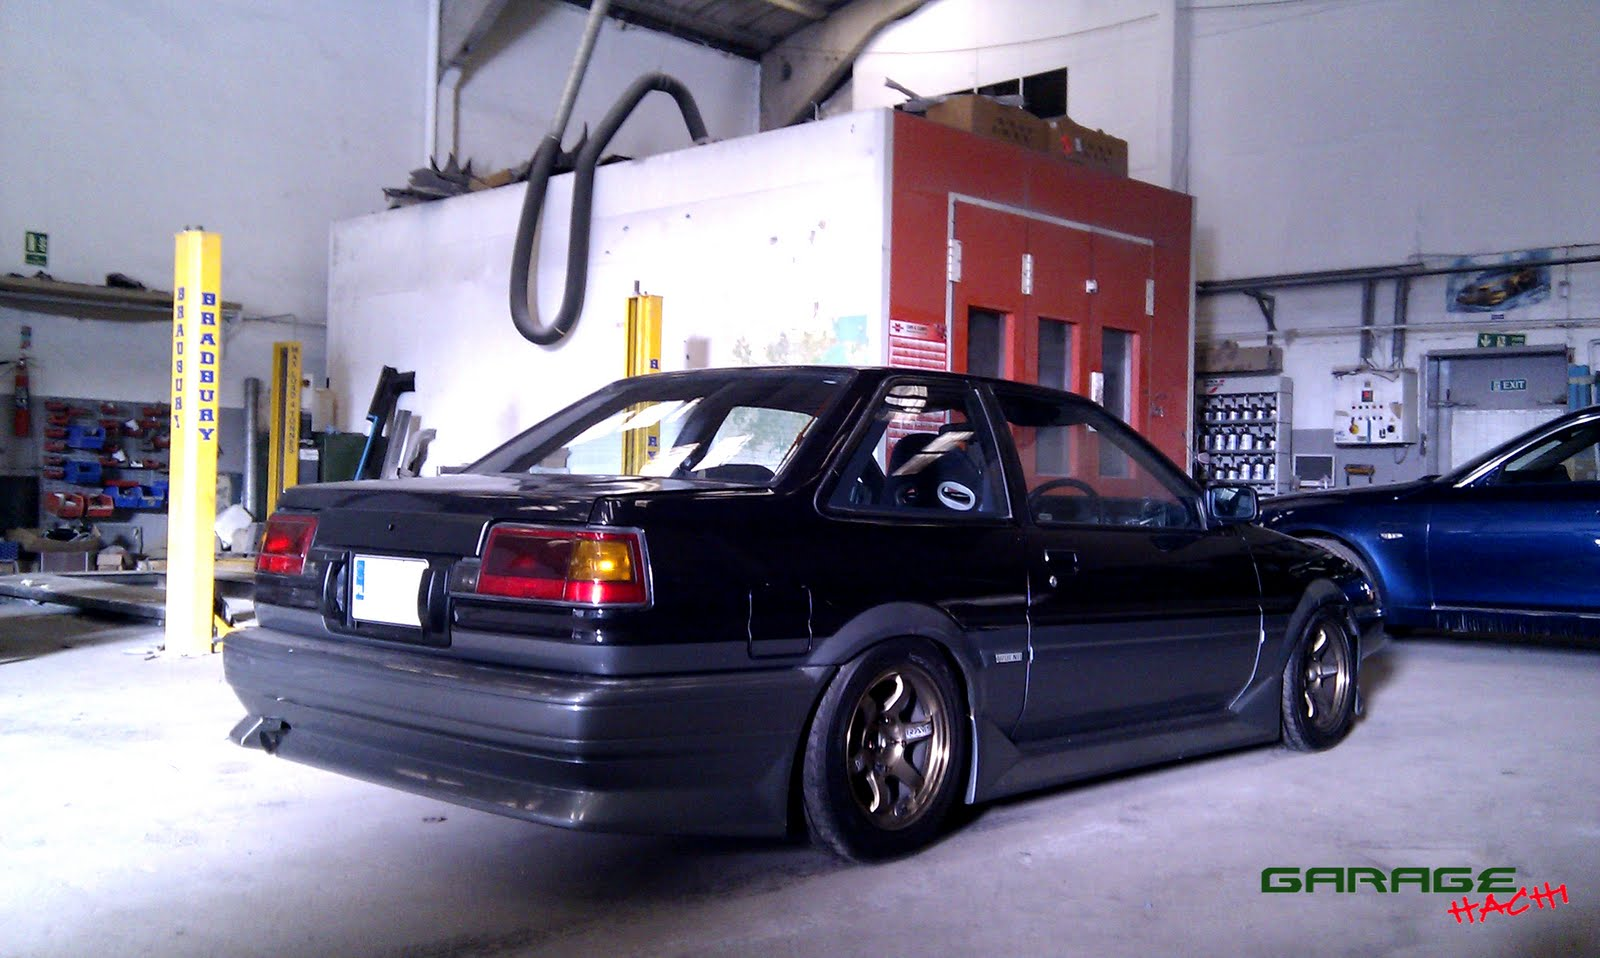 another Trueno arrives at the